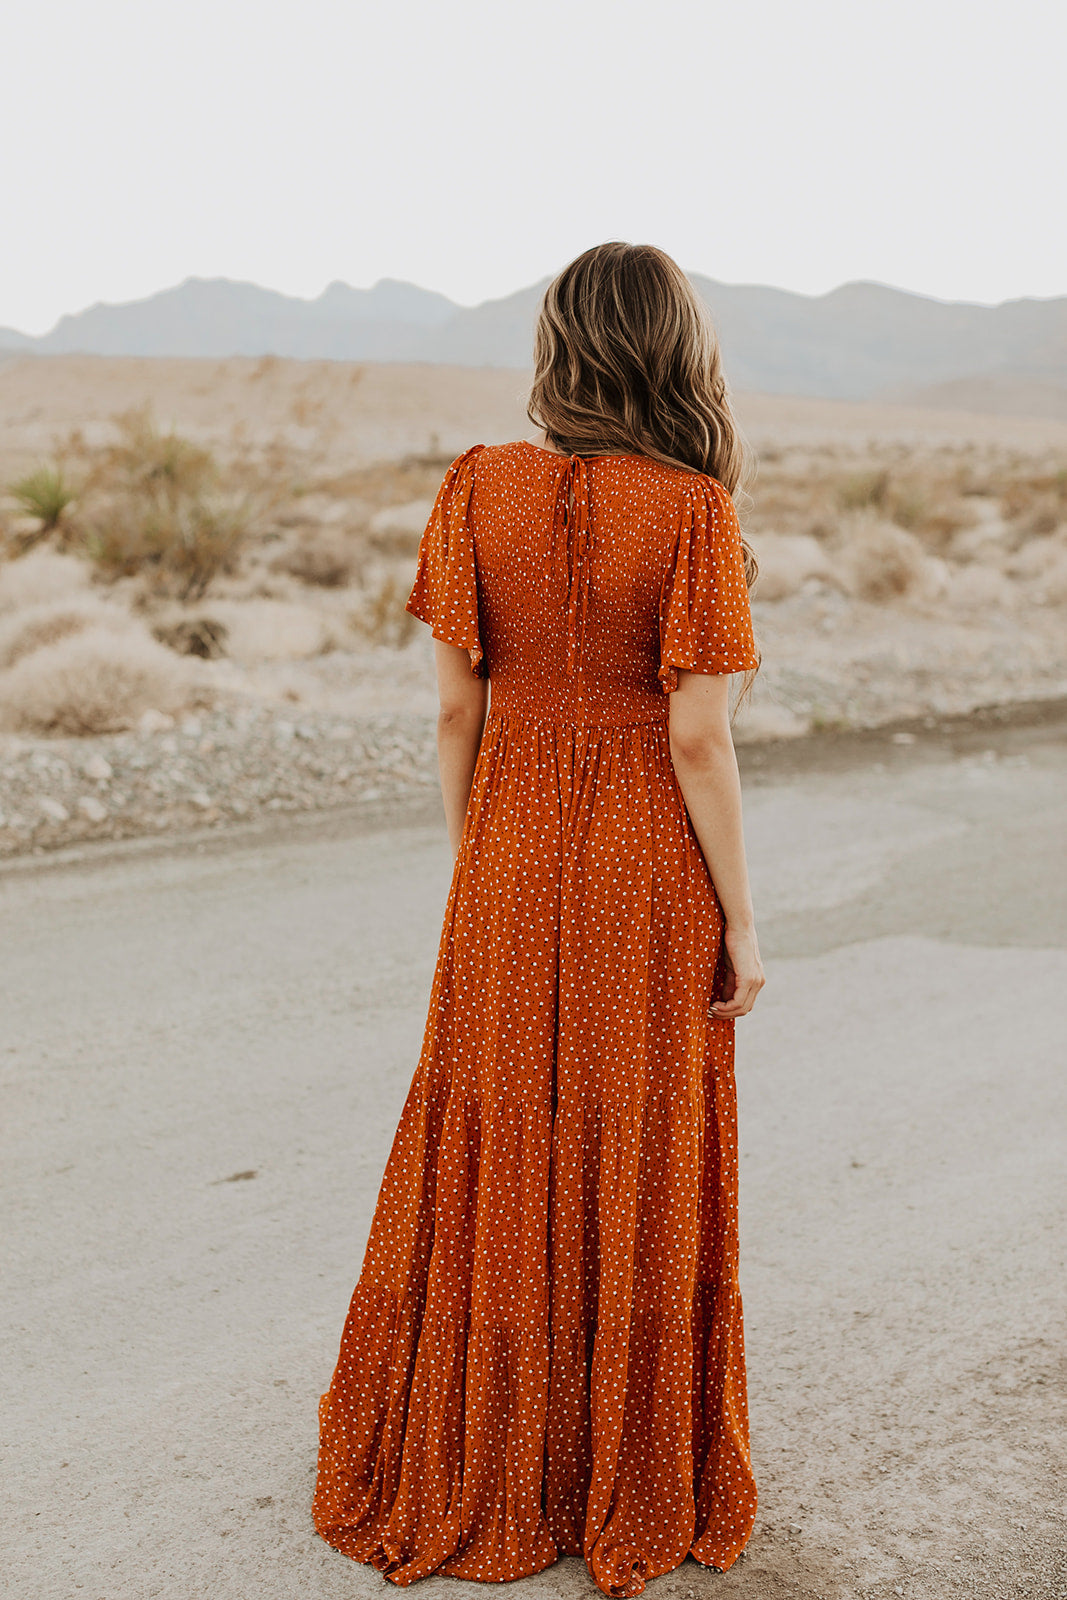 THE ESTELLE SMOCKED MAXI DRESS IN RUST